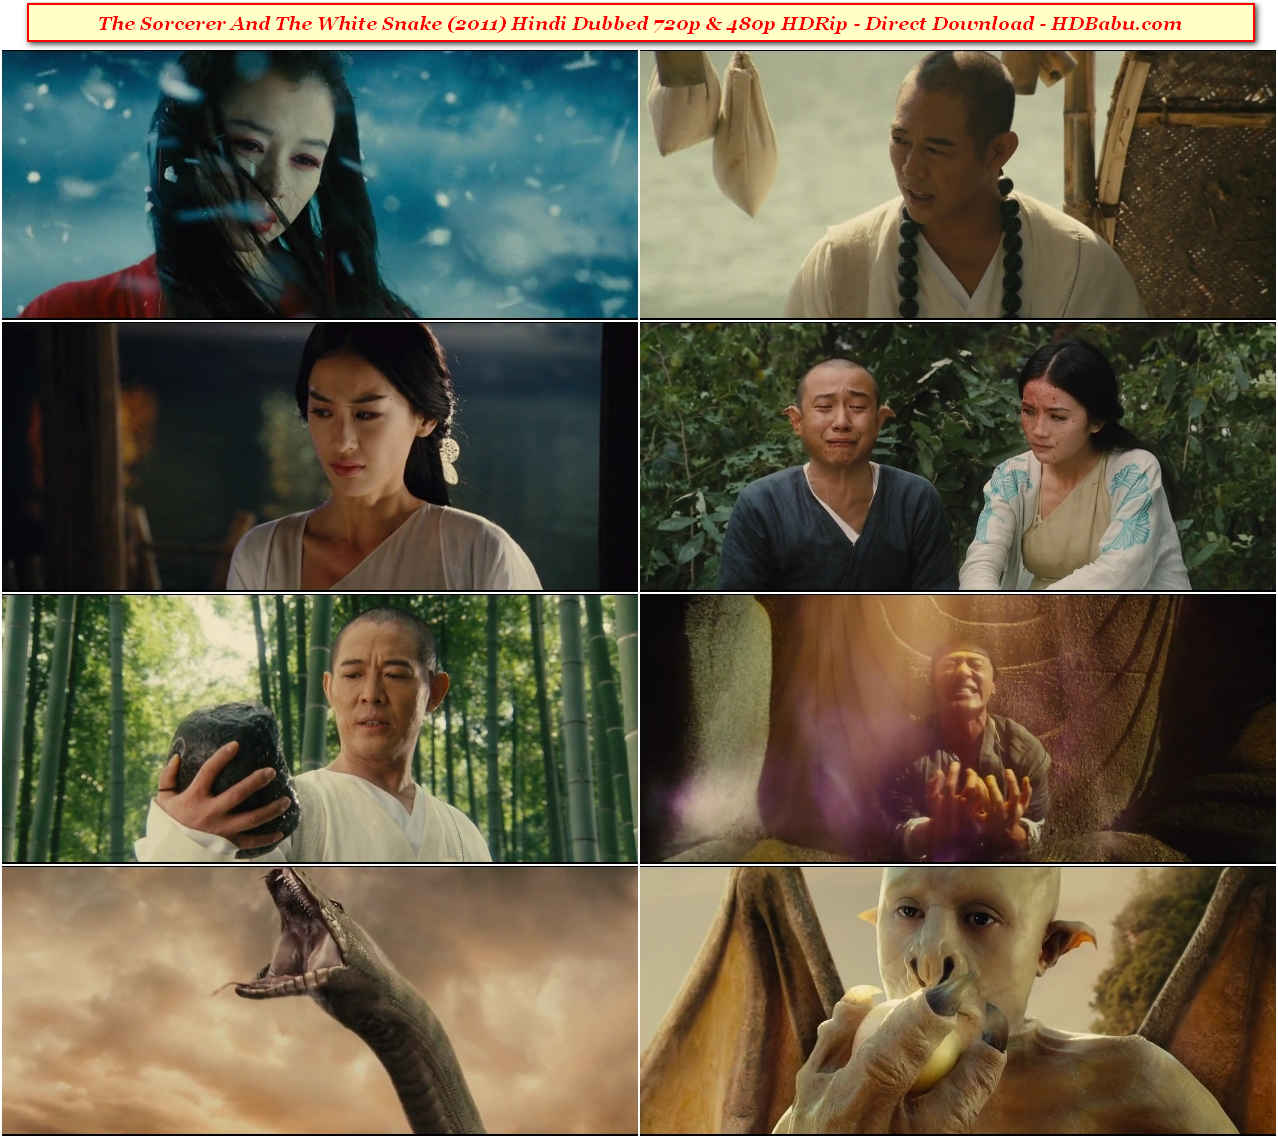 The Sorcerer And The White Snake Hindi Dubbed Full Movie Download